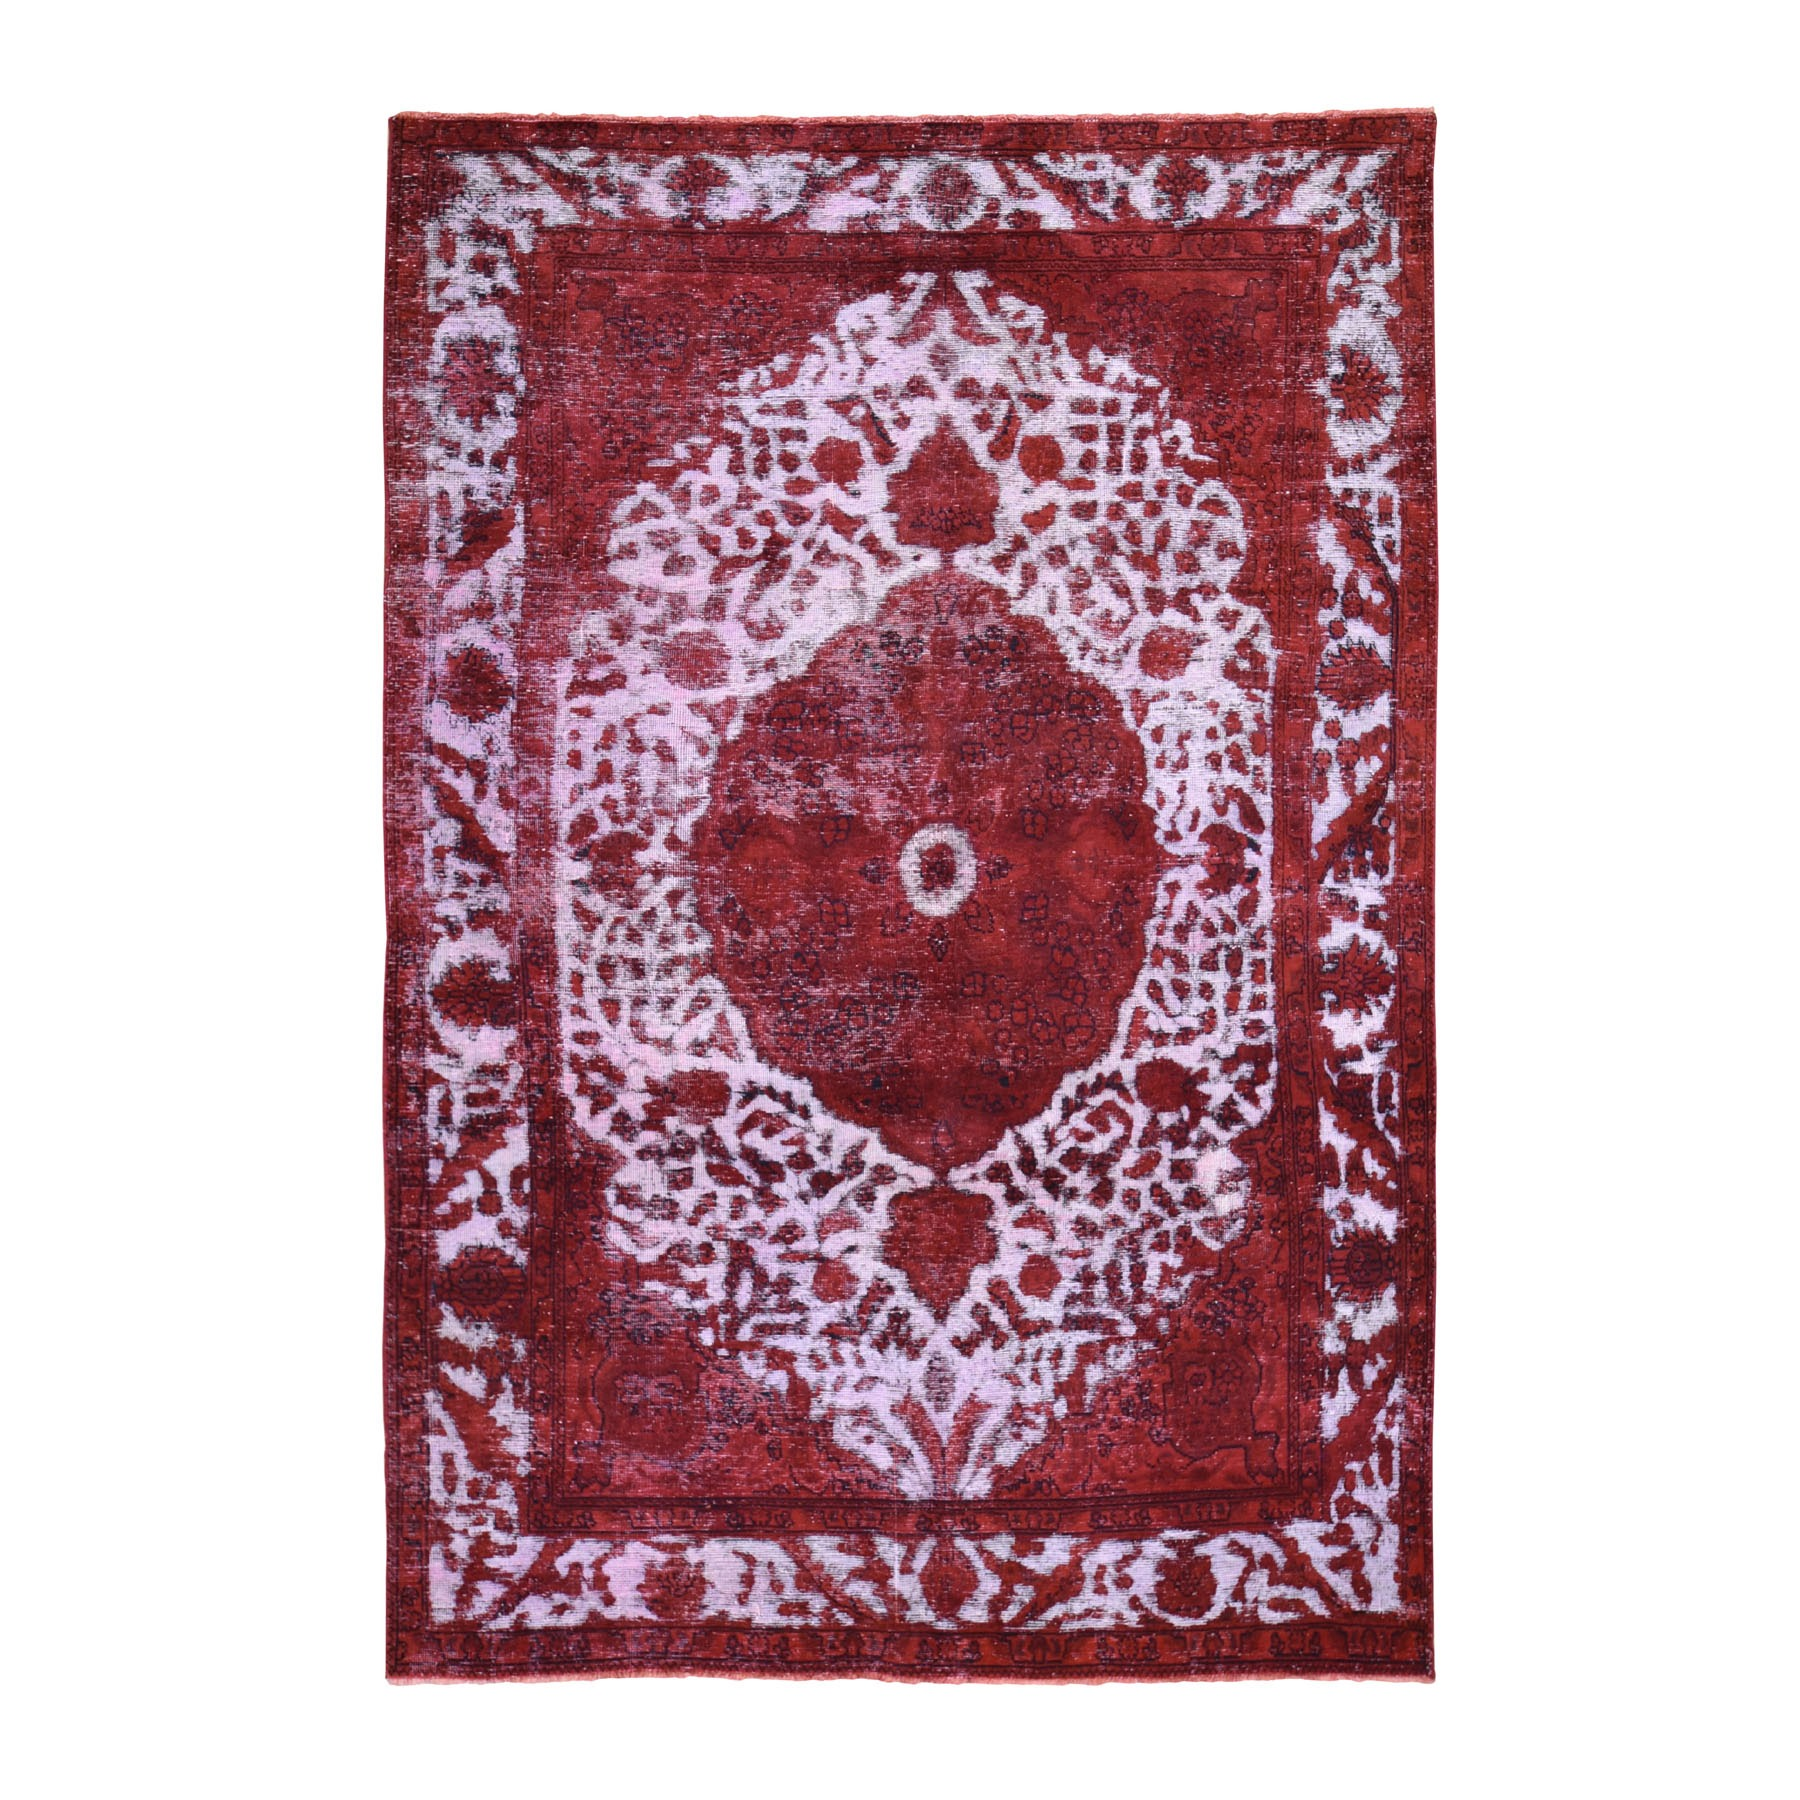 "6'6""x9'8"" Red Overdyed Persian Tabriz Worn Wool Hand Knotted Oriental Rug"